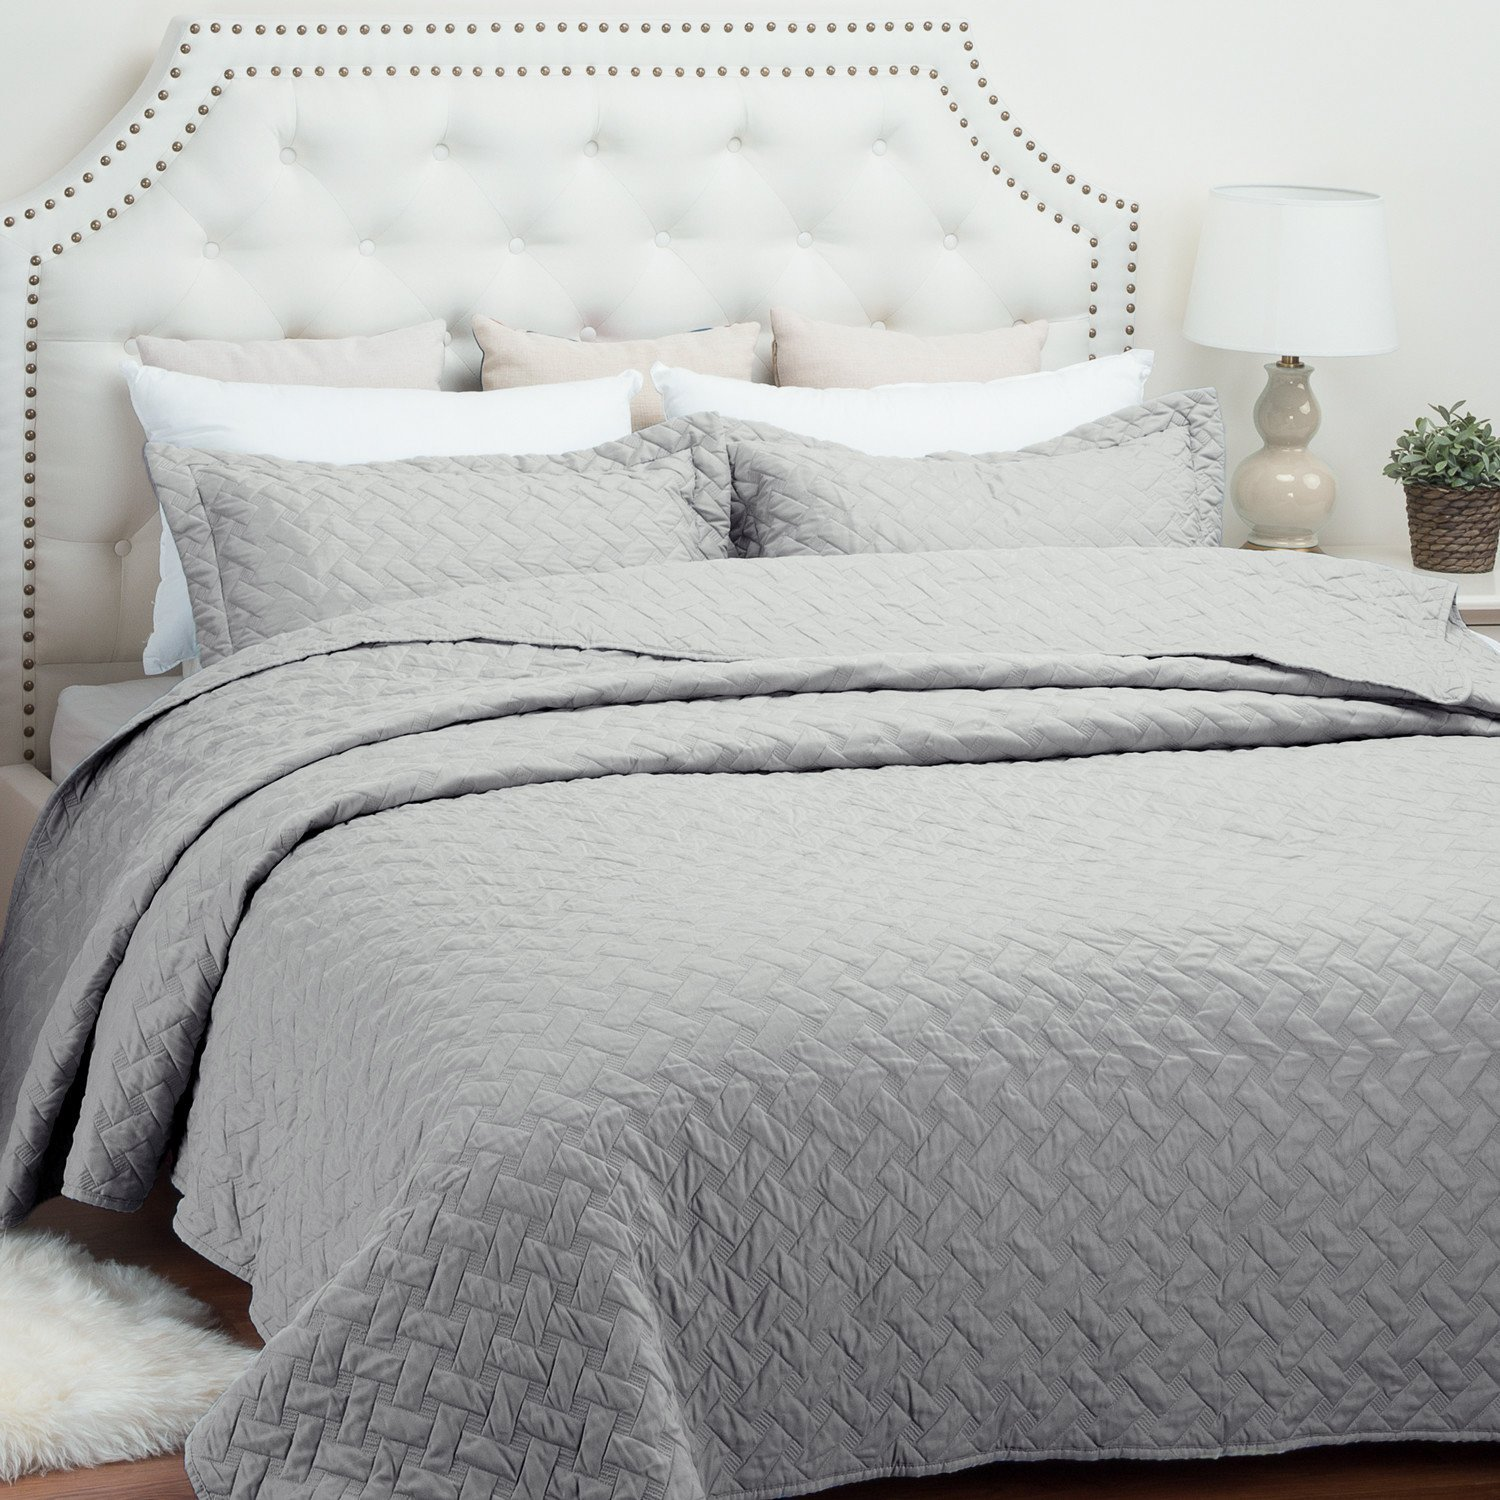 "Quilt Set Solid Grey King(106""x96"") Basketweave Pattern Lightweight Hypoallergenic Microfiber ""Simone"" by Bedsure"